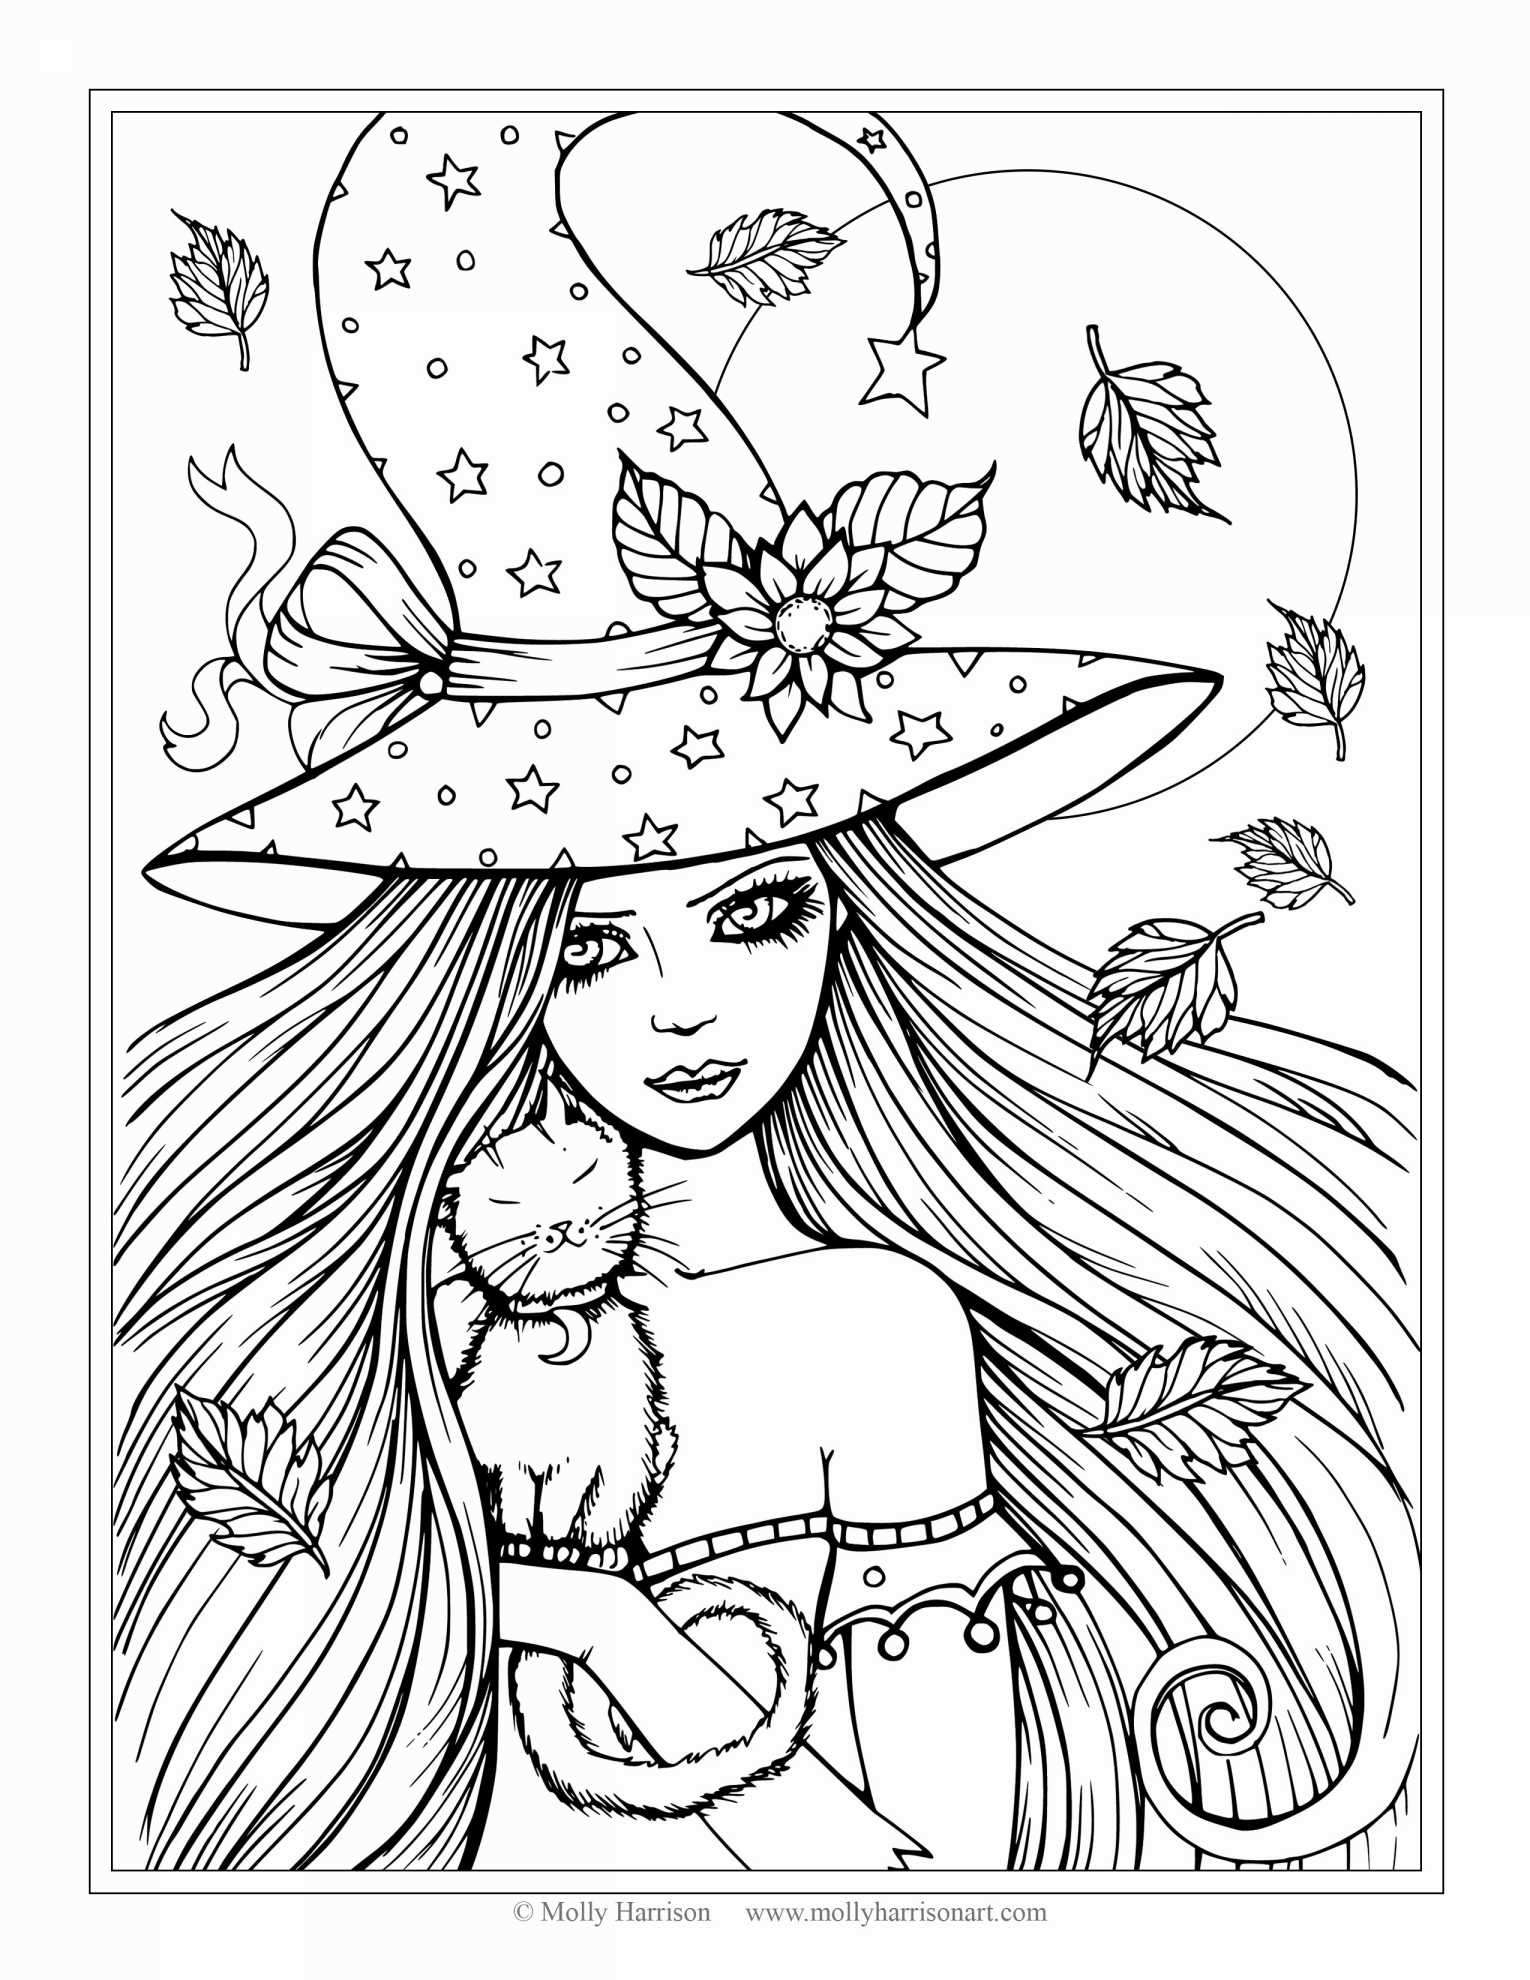 free disney princess coloring pages Collection-Disney Princesses Coloring Pages Frozen Princess Coloring Page Free Coloring Sheets Kids Printable Coloring Pages 20-b